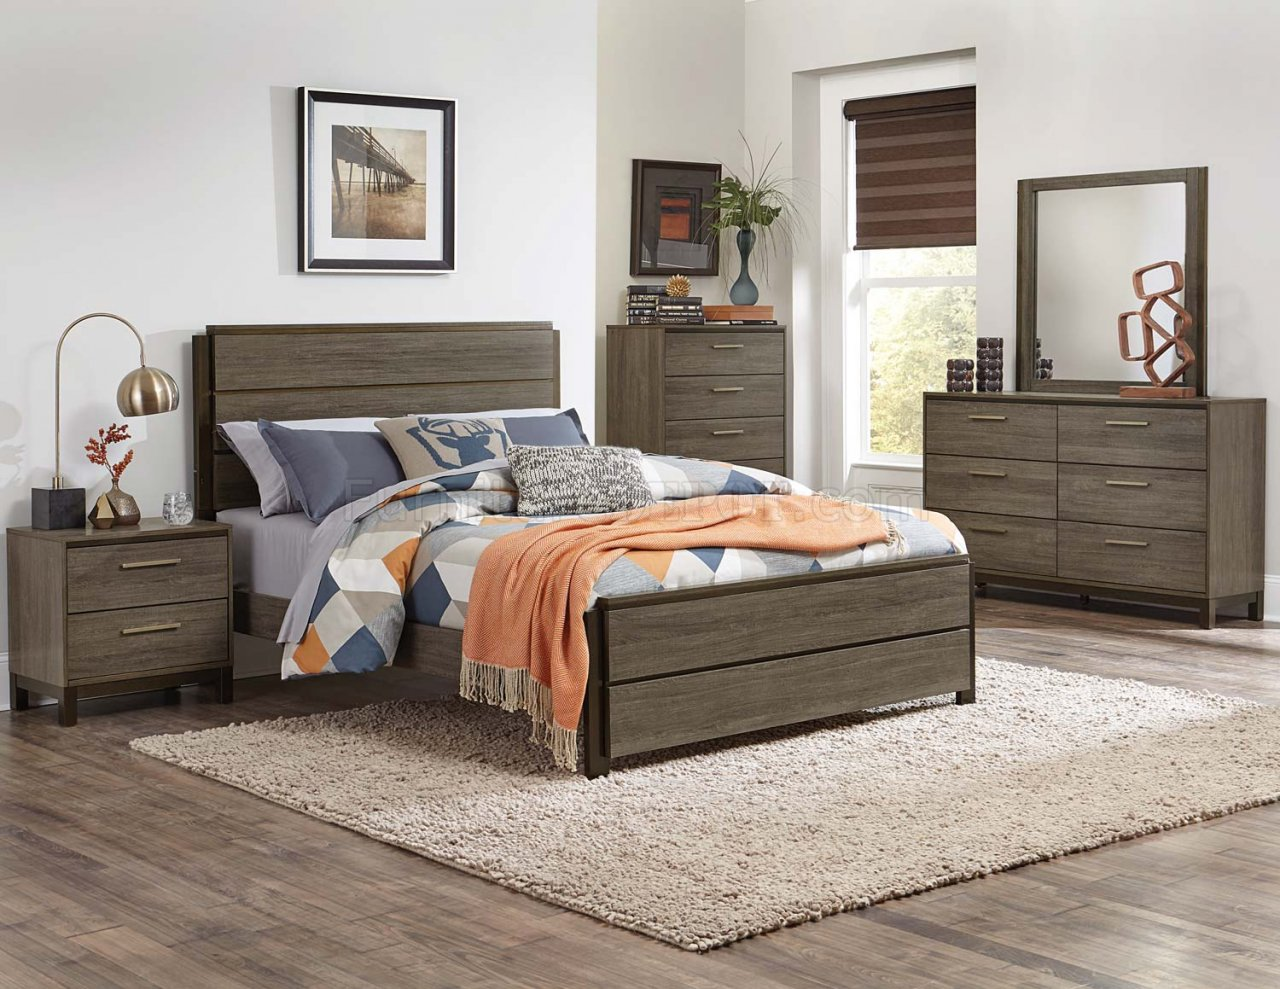 vestavia bedroom set 1936 in dark brown by homelegance w/options